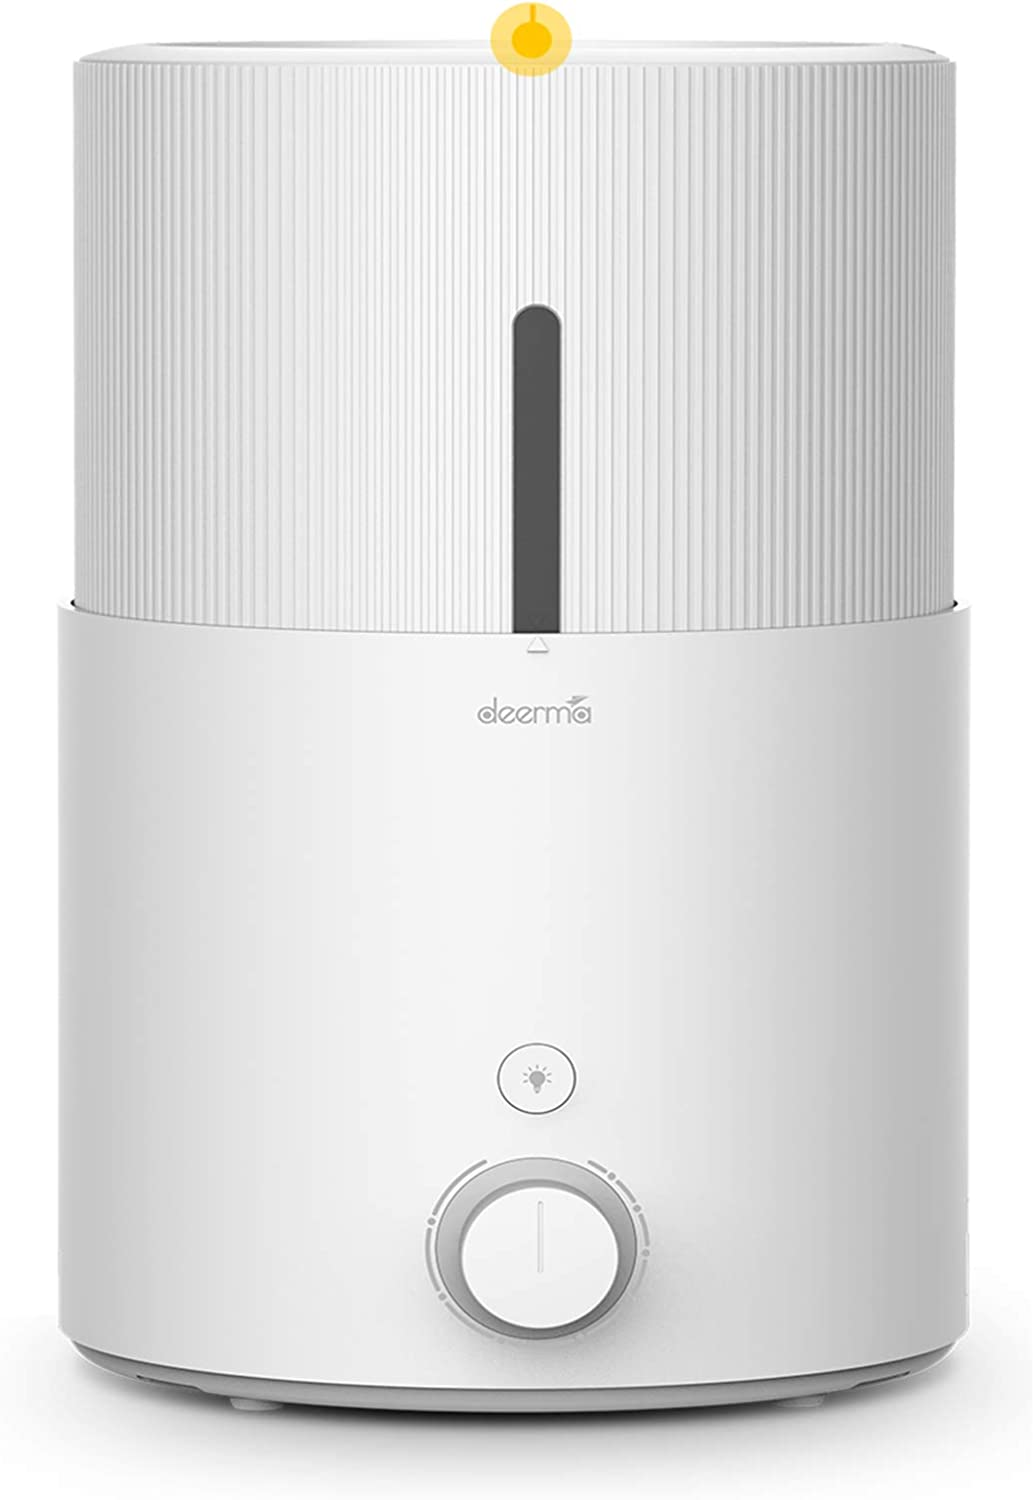 DEERMA 5L Top Fill Ultrasonic Cool Mist Air Humidifiers for Home Baby Large Room Bedroom Office, 2 In 1 Humidifiers and Essential Oil Diffuser, Night Light, Auto Shut Off, Adjustable Mist Volume